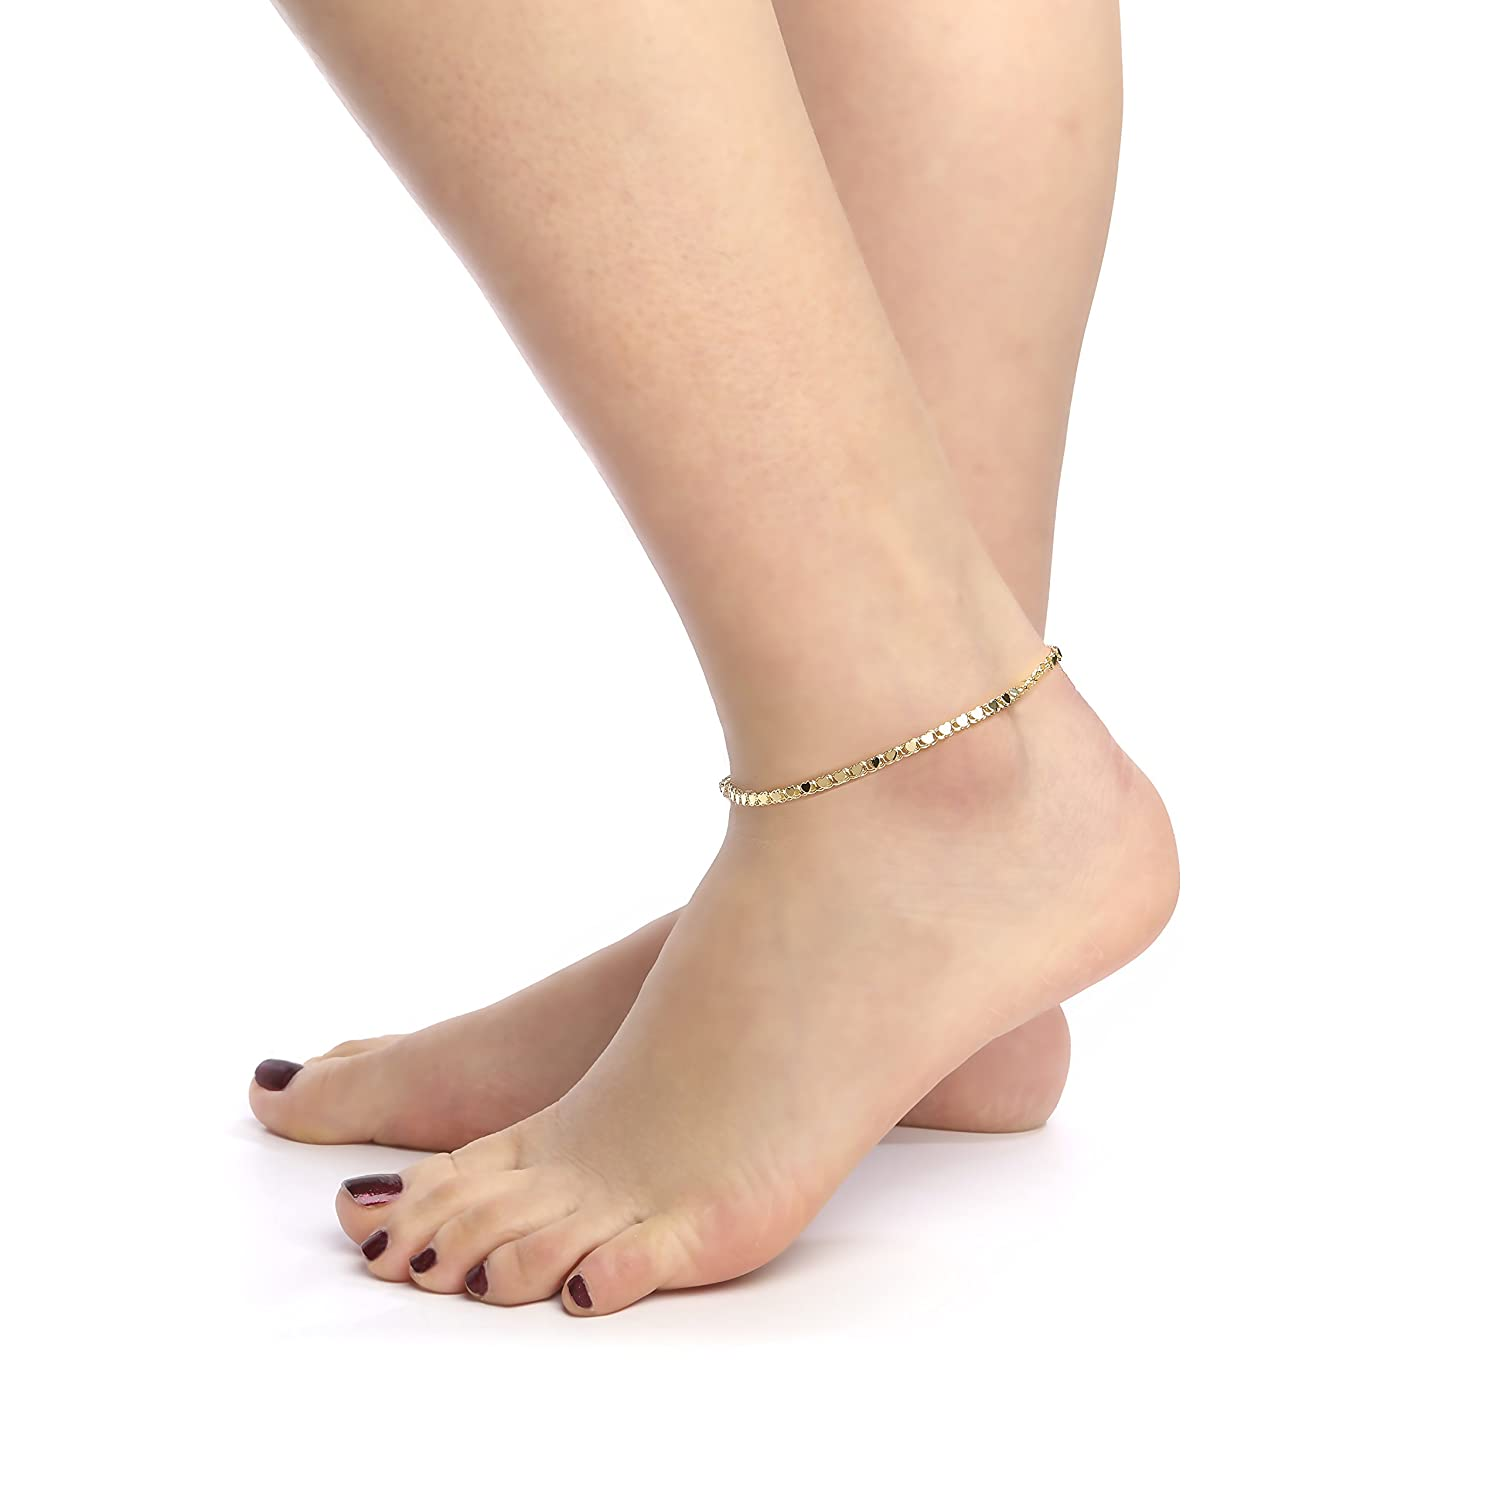 anklet jewellery ankle ksvhs with anklets beautiful gold charms rose bracelets